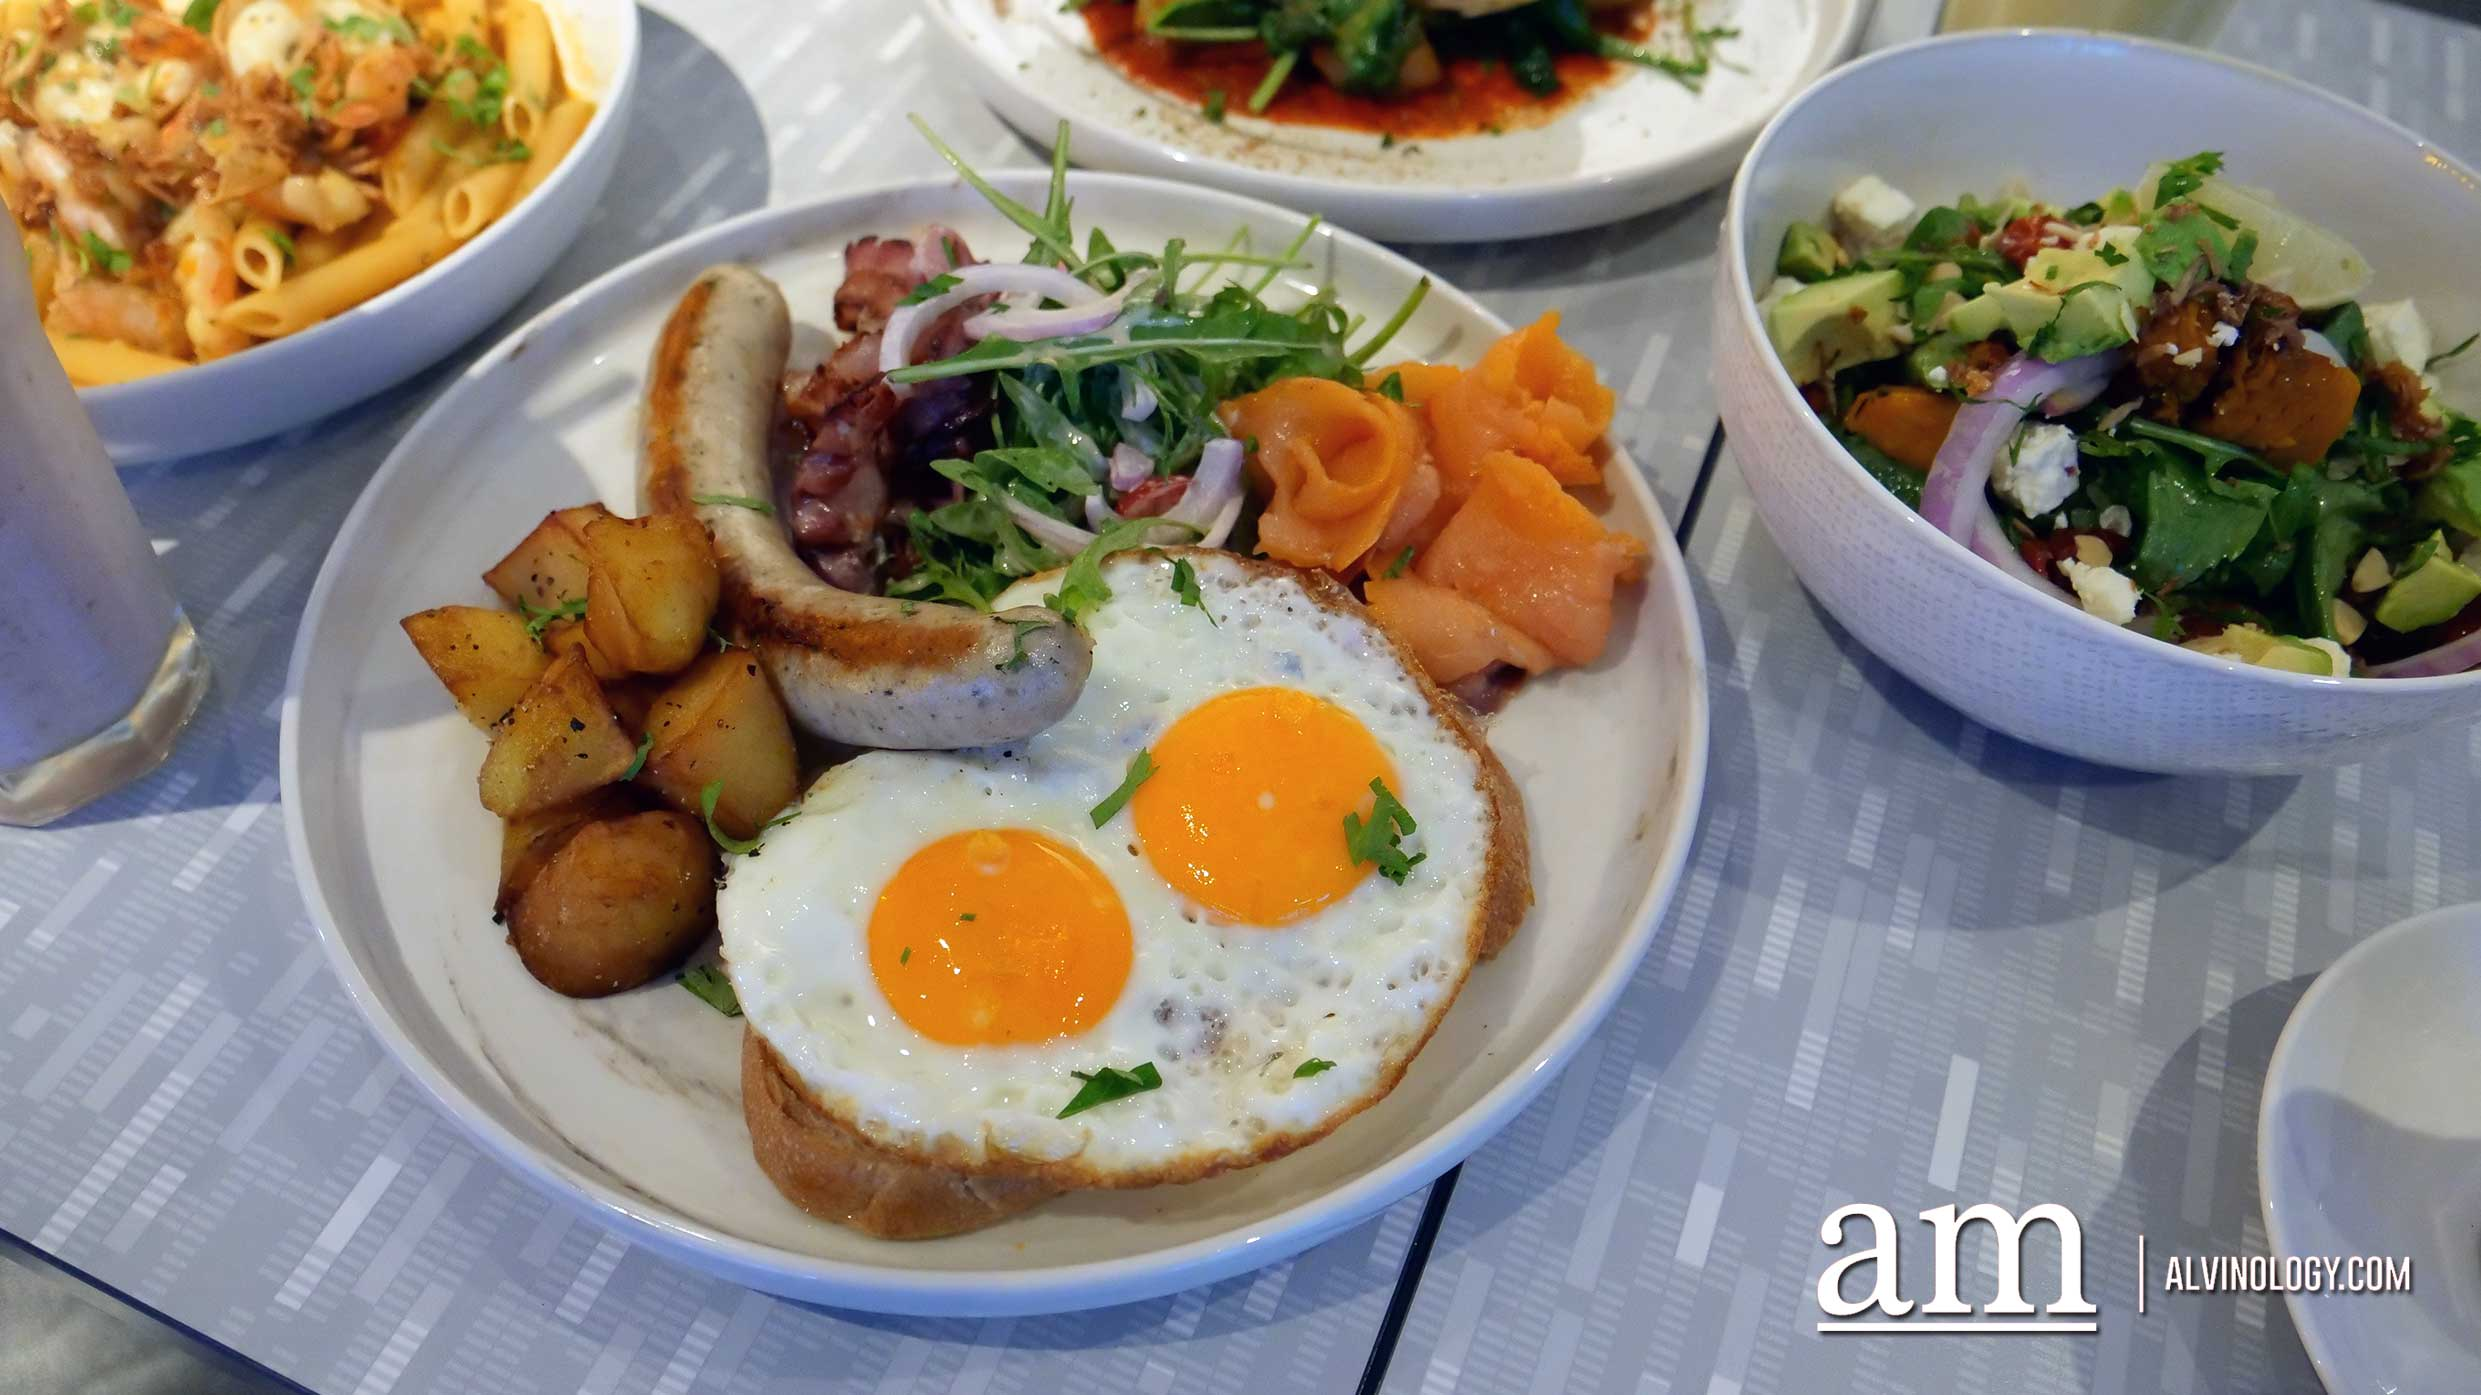 SMH Big Brunch (S$24) - Smoked salmon, streaky bacon, Italian sausage, potatoes, side salad, fried eggs, sour dough toast